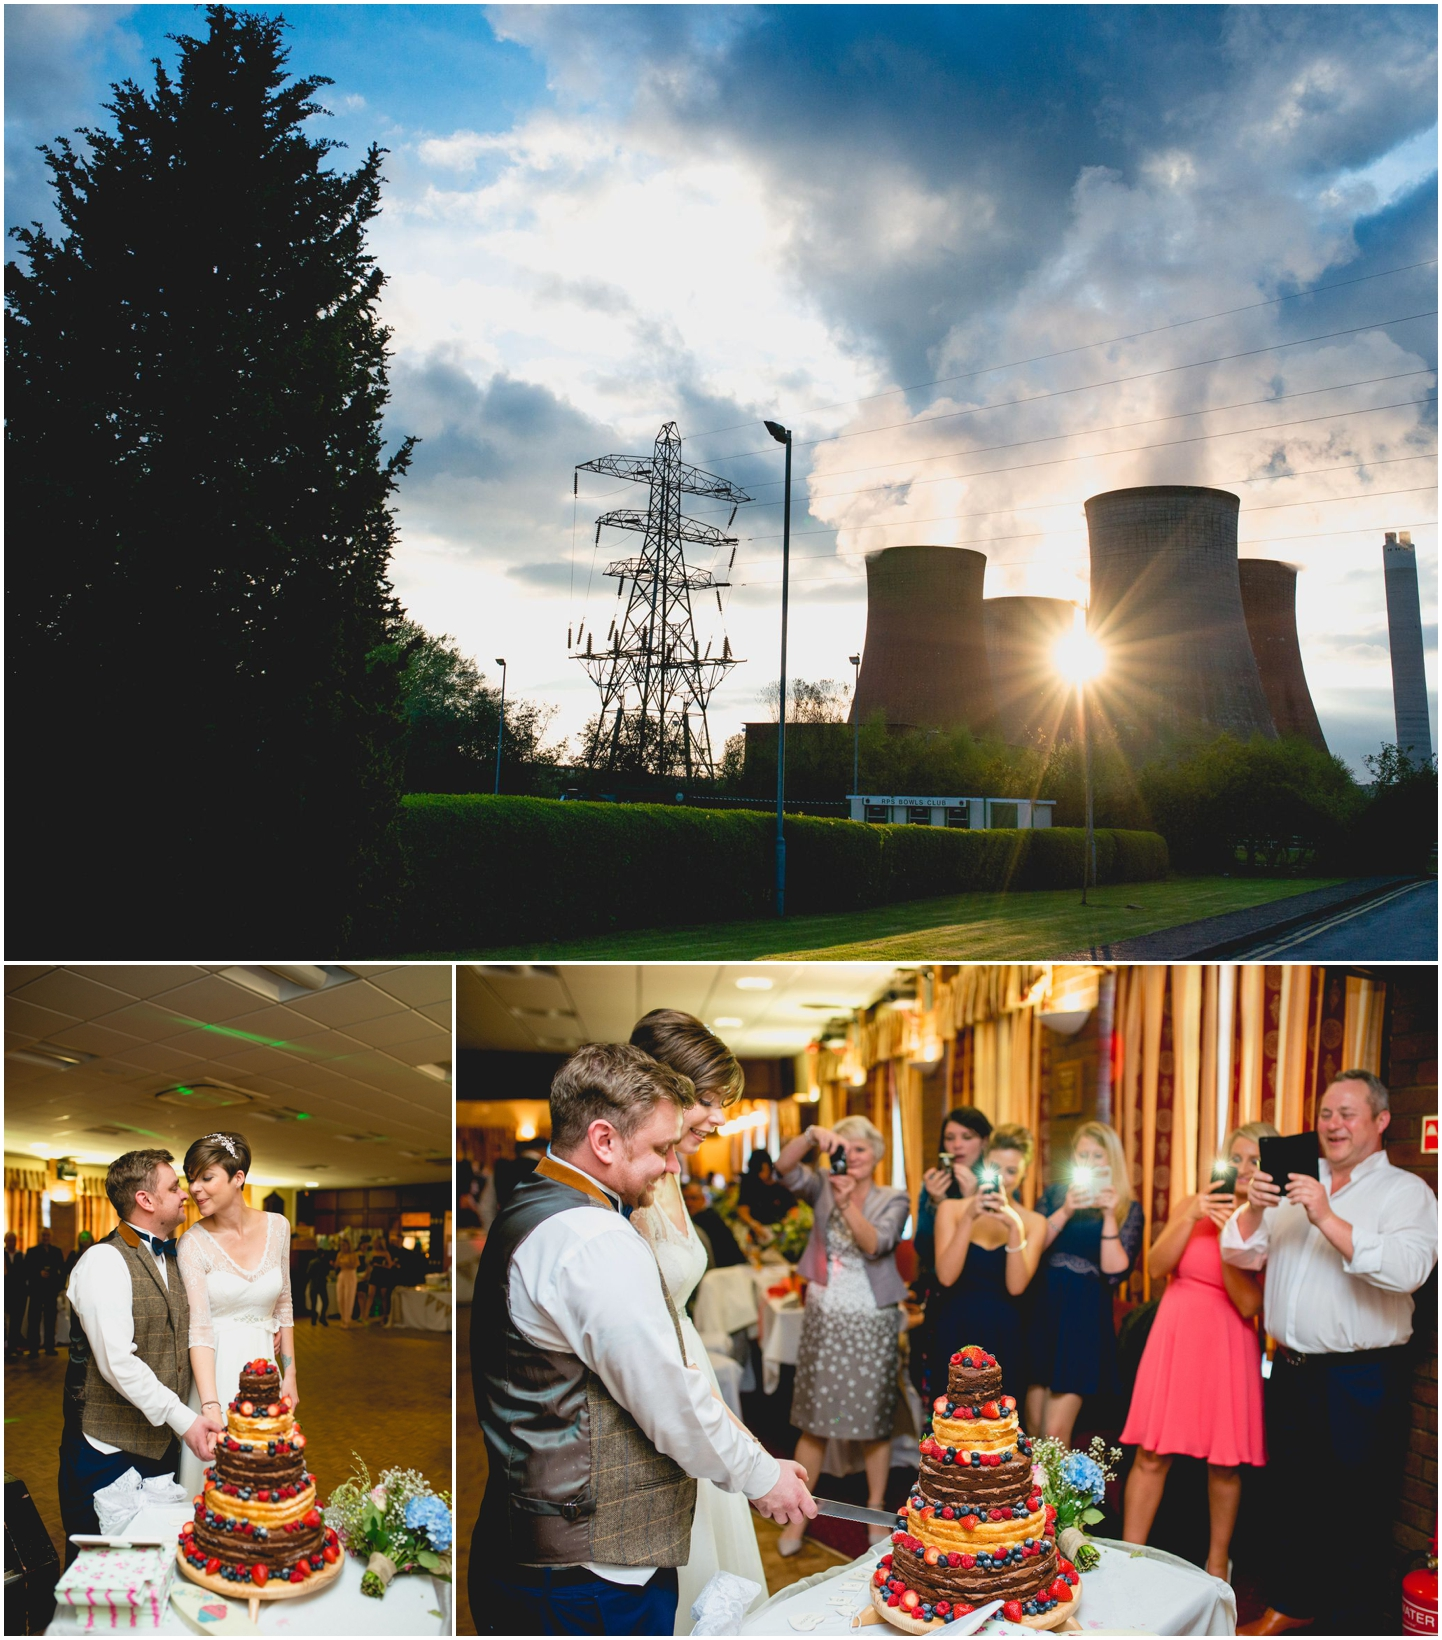 Rugeley Power Station, Wedding, Wedding Photography, West Midlands, photos,Lisa Carpenter Photography, Lichfield Registry Ofice, Peter and Eve, Subway, Power Station, Chimneys, Campervan, VW, cake cutting